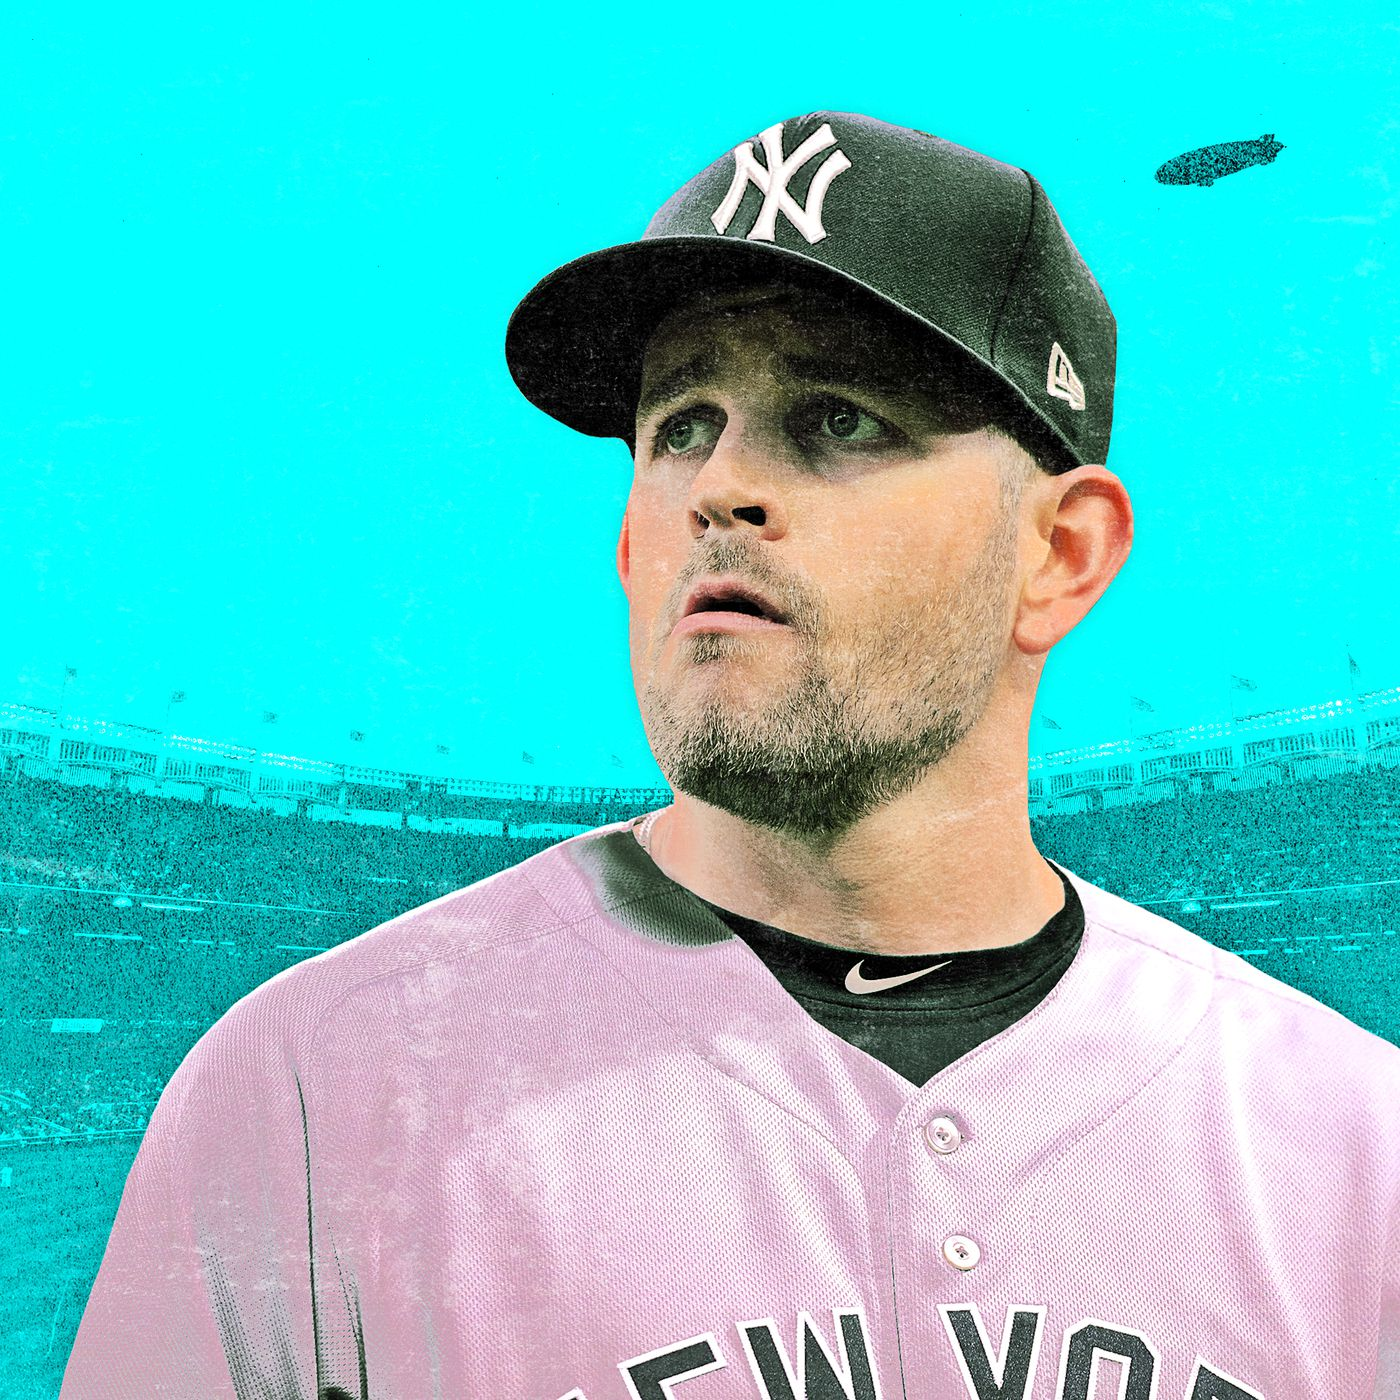 b24166811b3 The New York Yankees Get an Ace in Trade for Seattle s James Paxton - The  Ringer